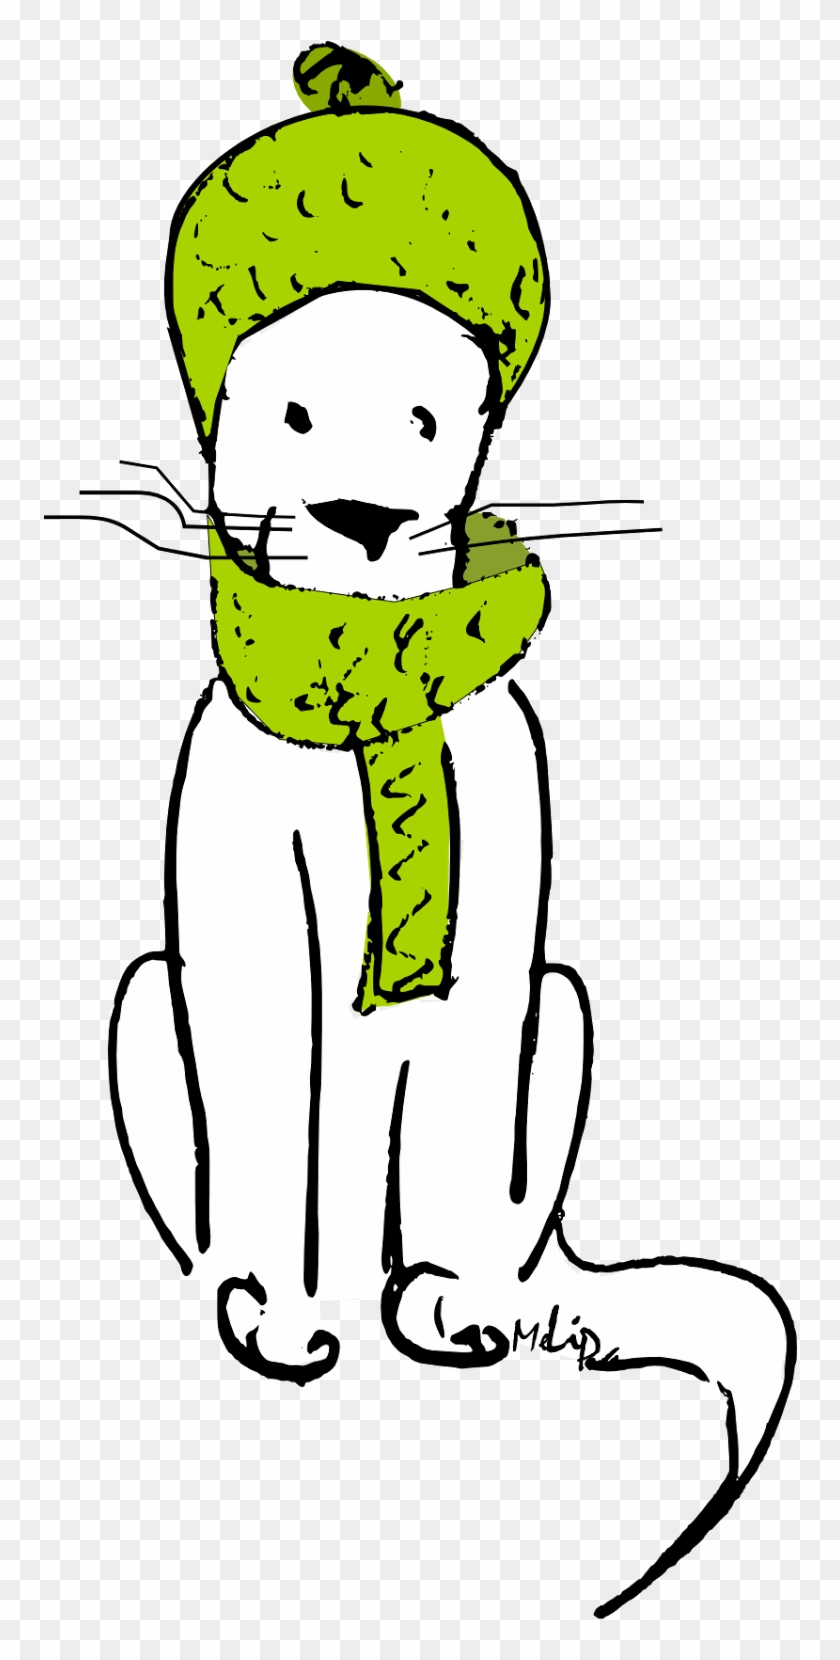 Winter Cat Clipart - Winter Cat Clipart #12376